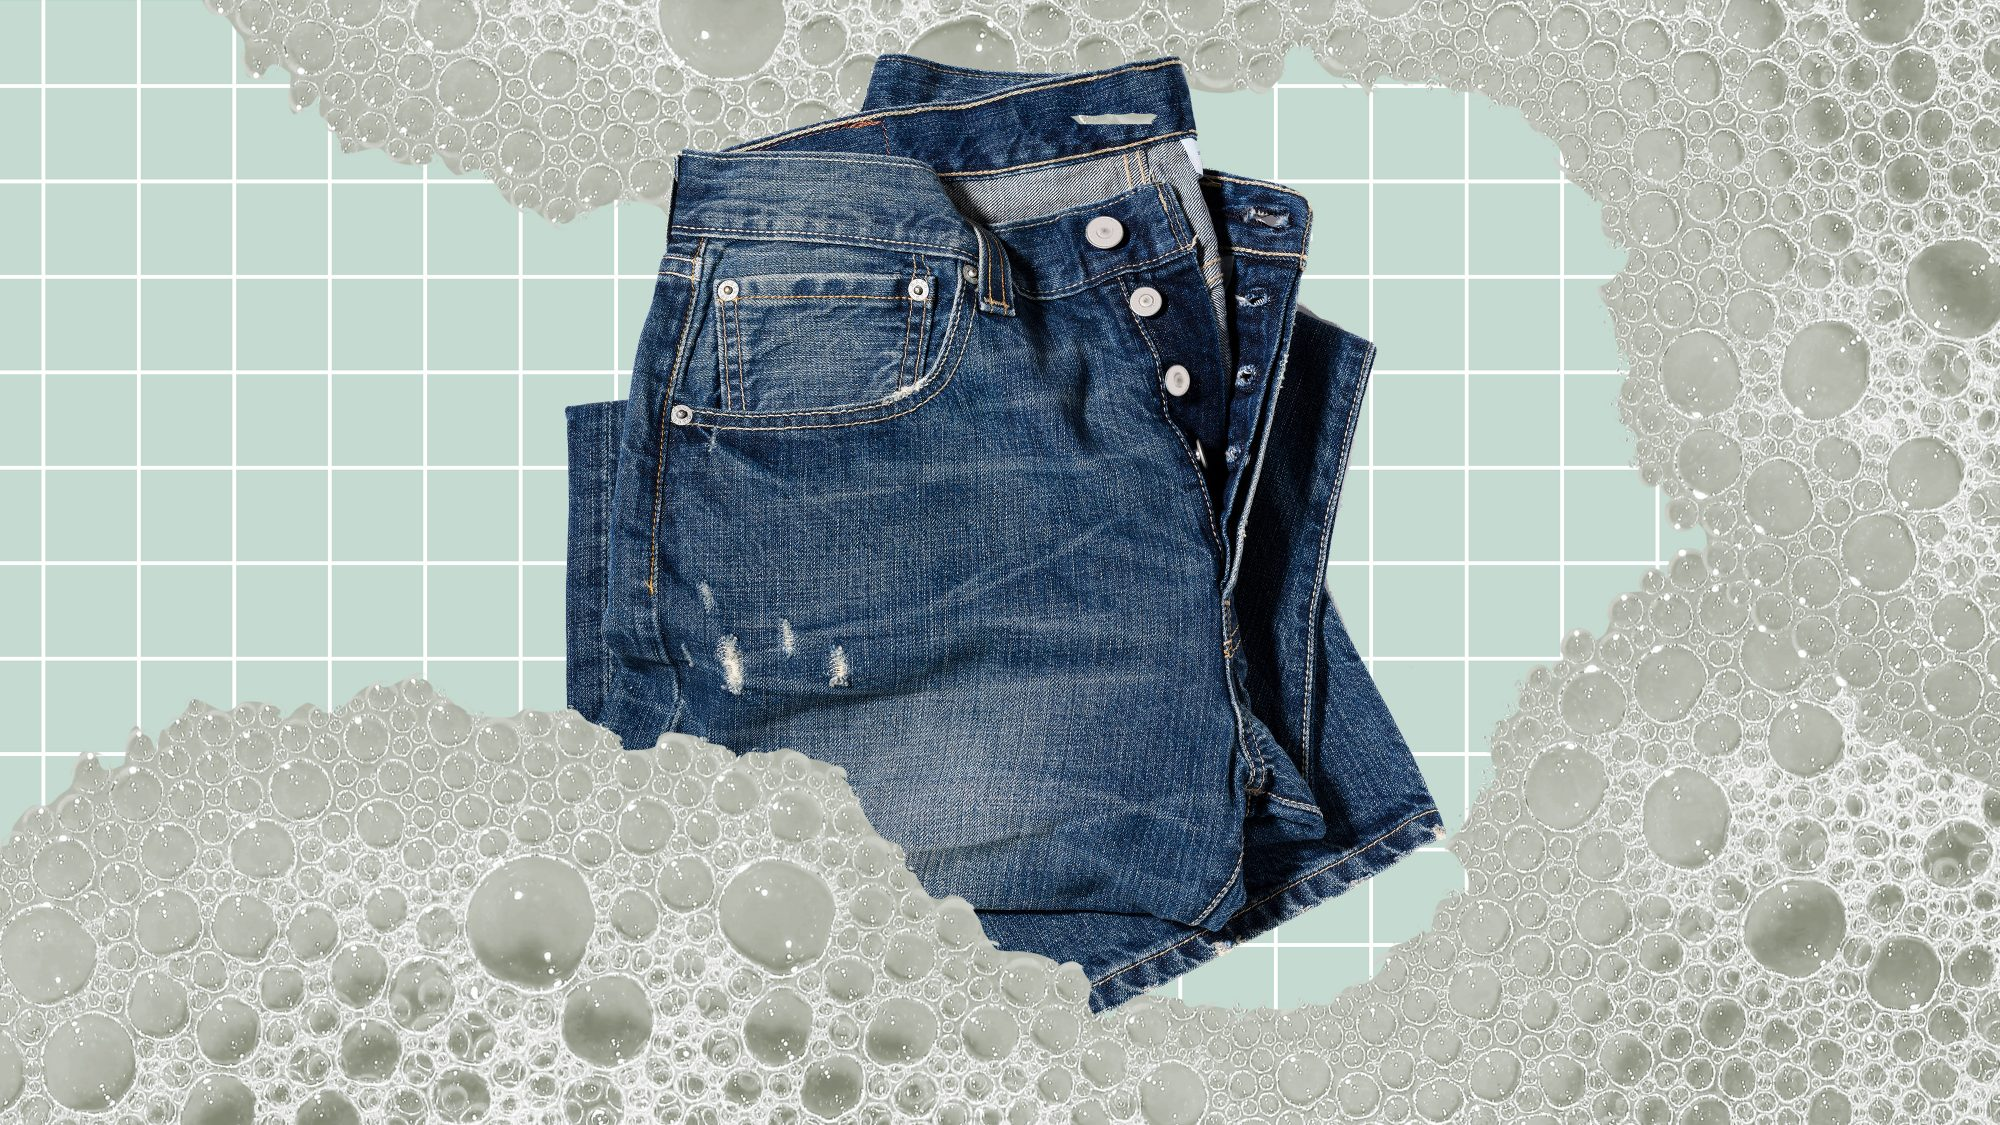 wash-jeans